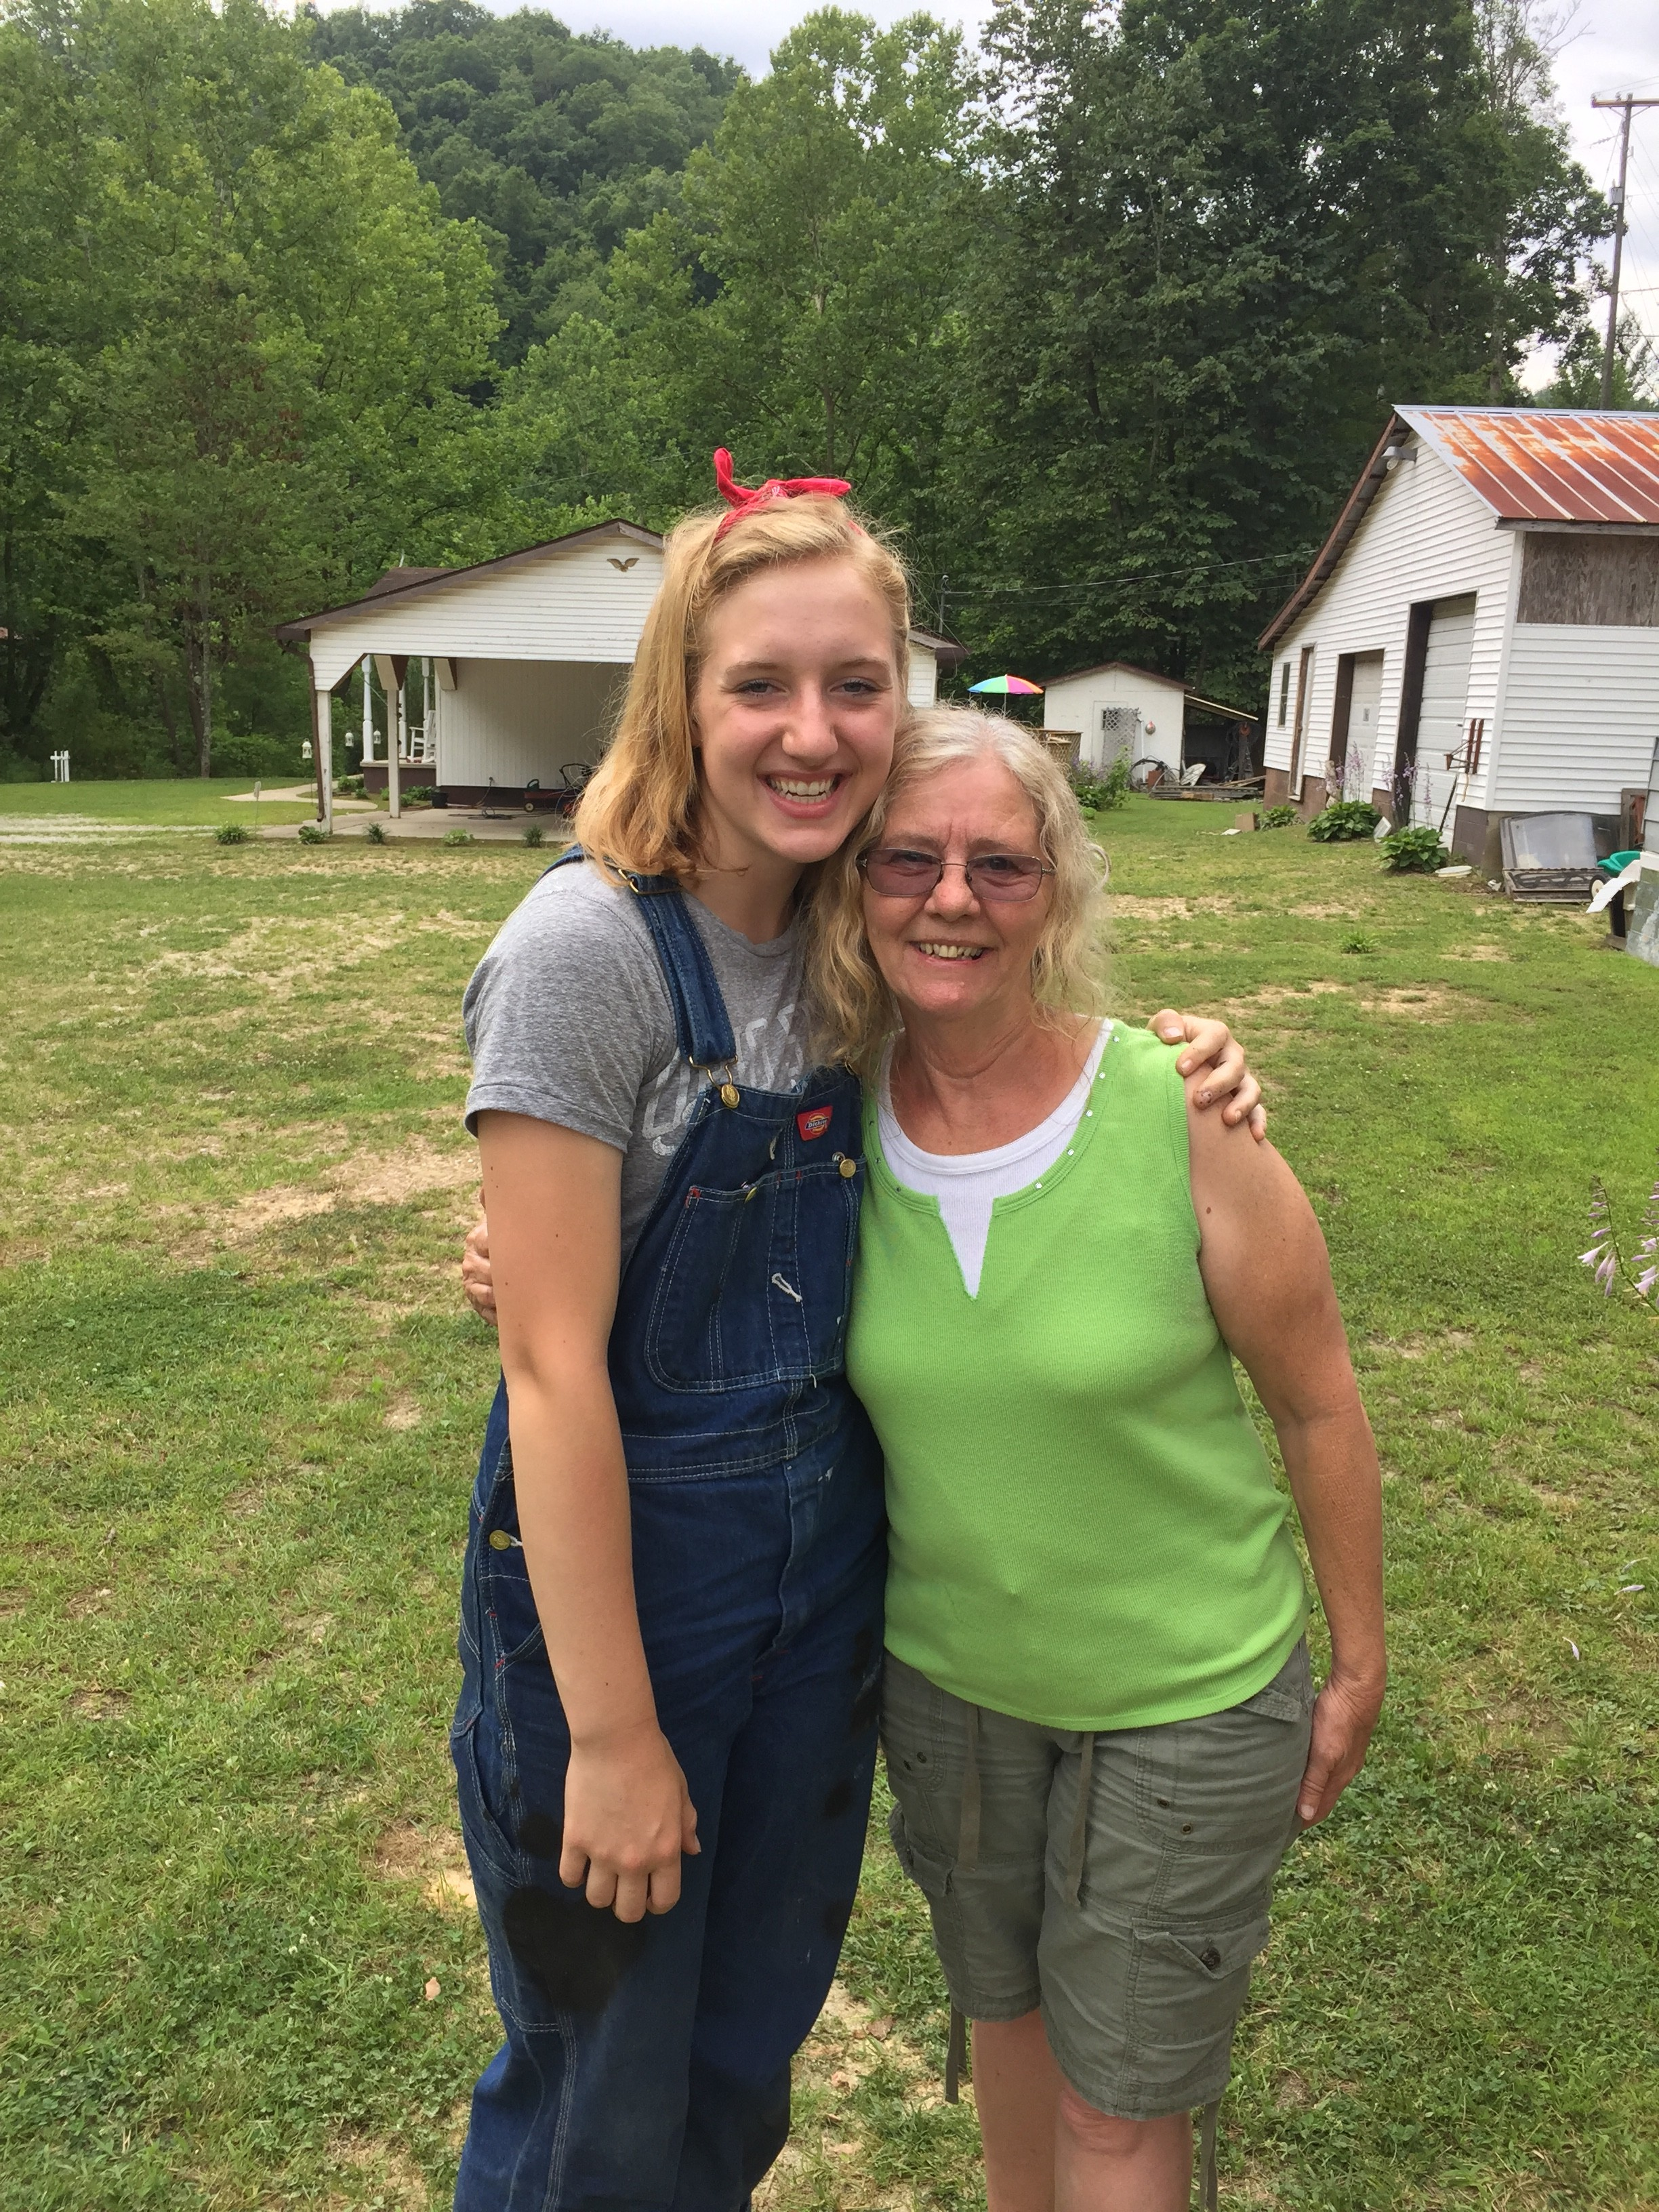 appalachia service project Watch video apply online today:     film/production: ricky scheiber-camoretti.